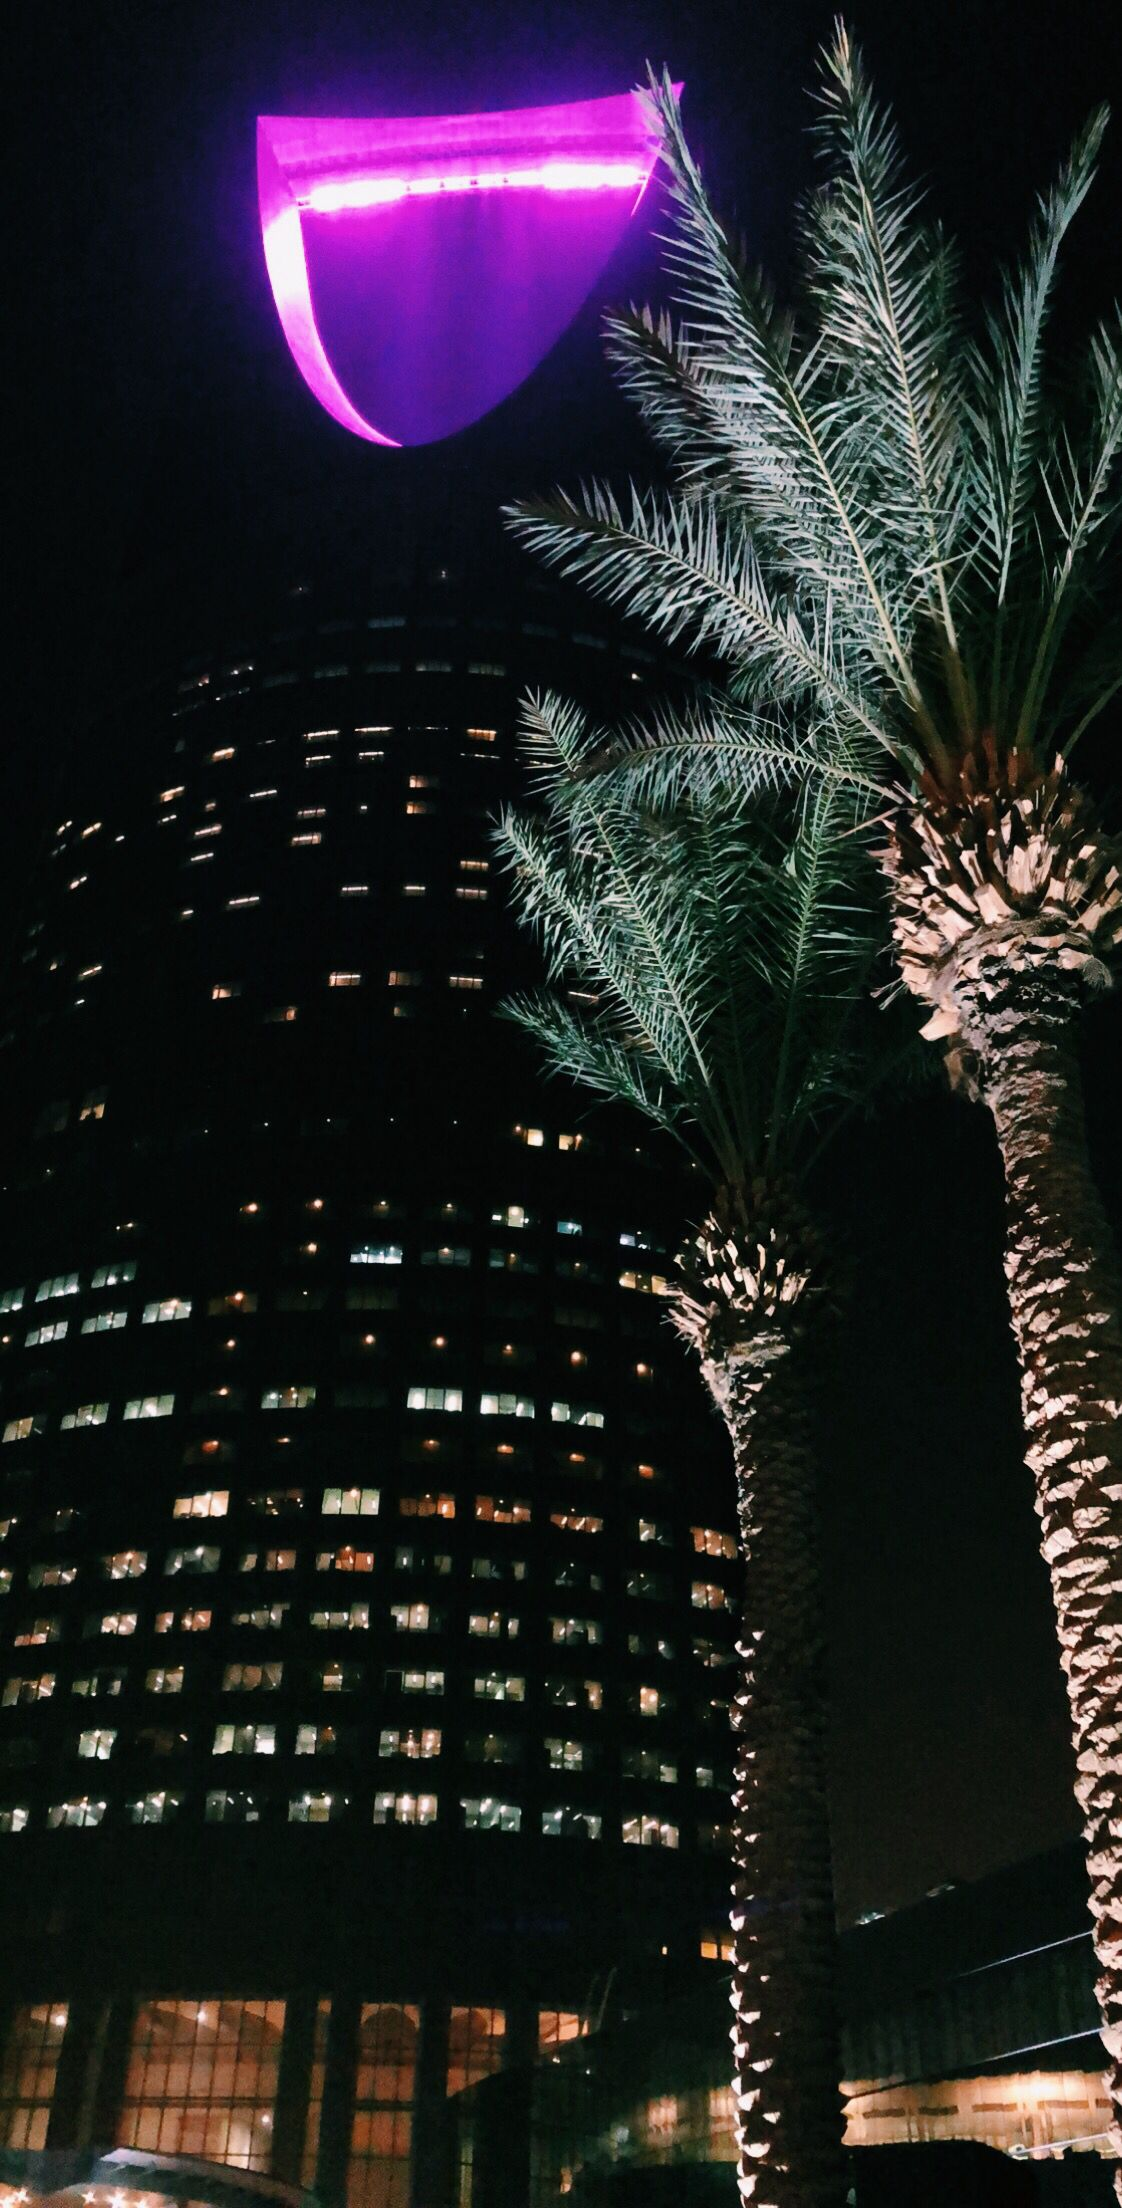 Riyadh Ksa City Tumblr Beautiful Nature City Wallpaper